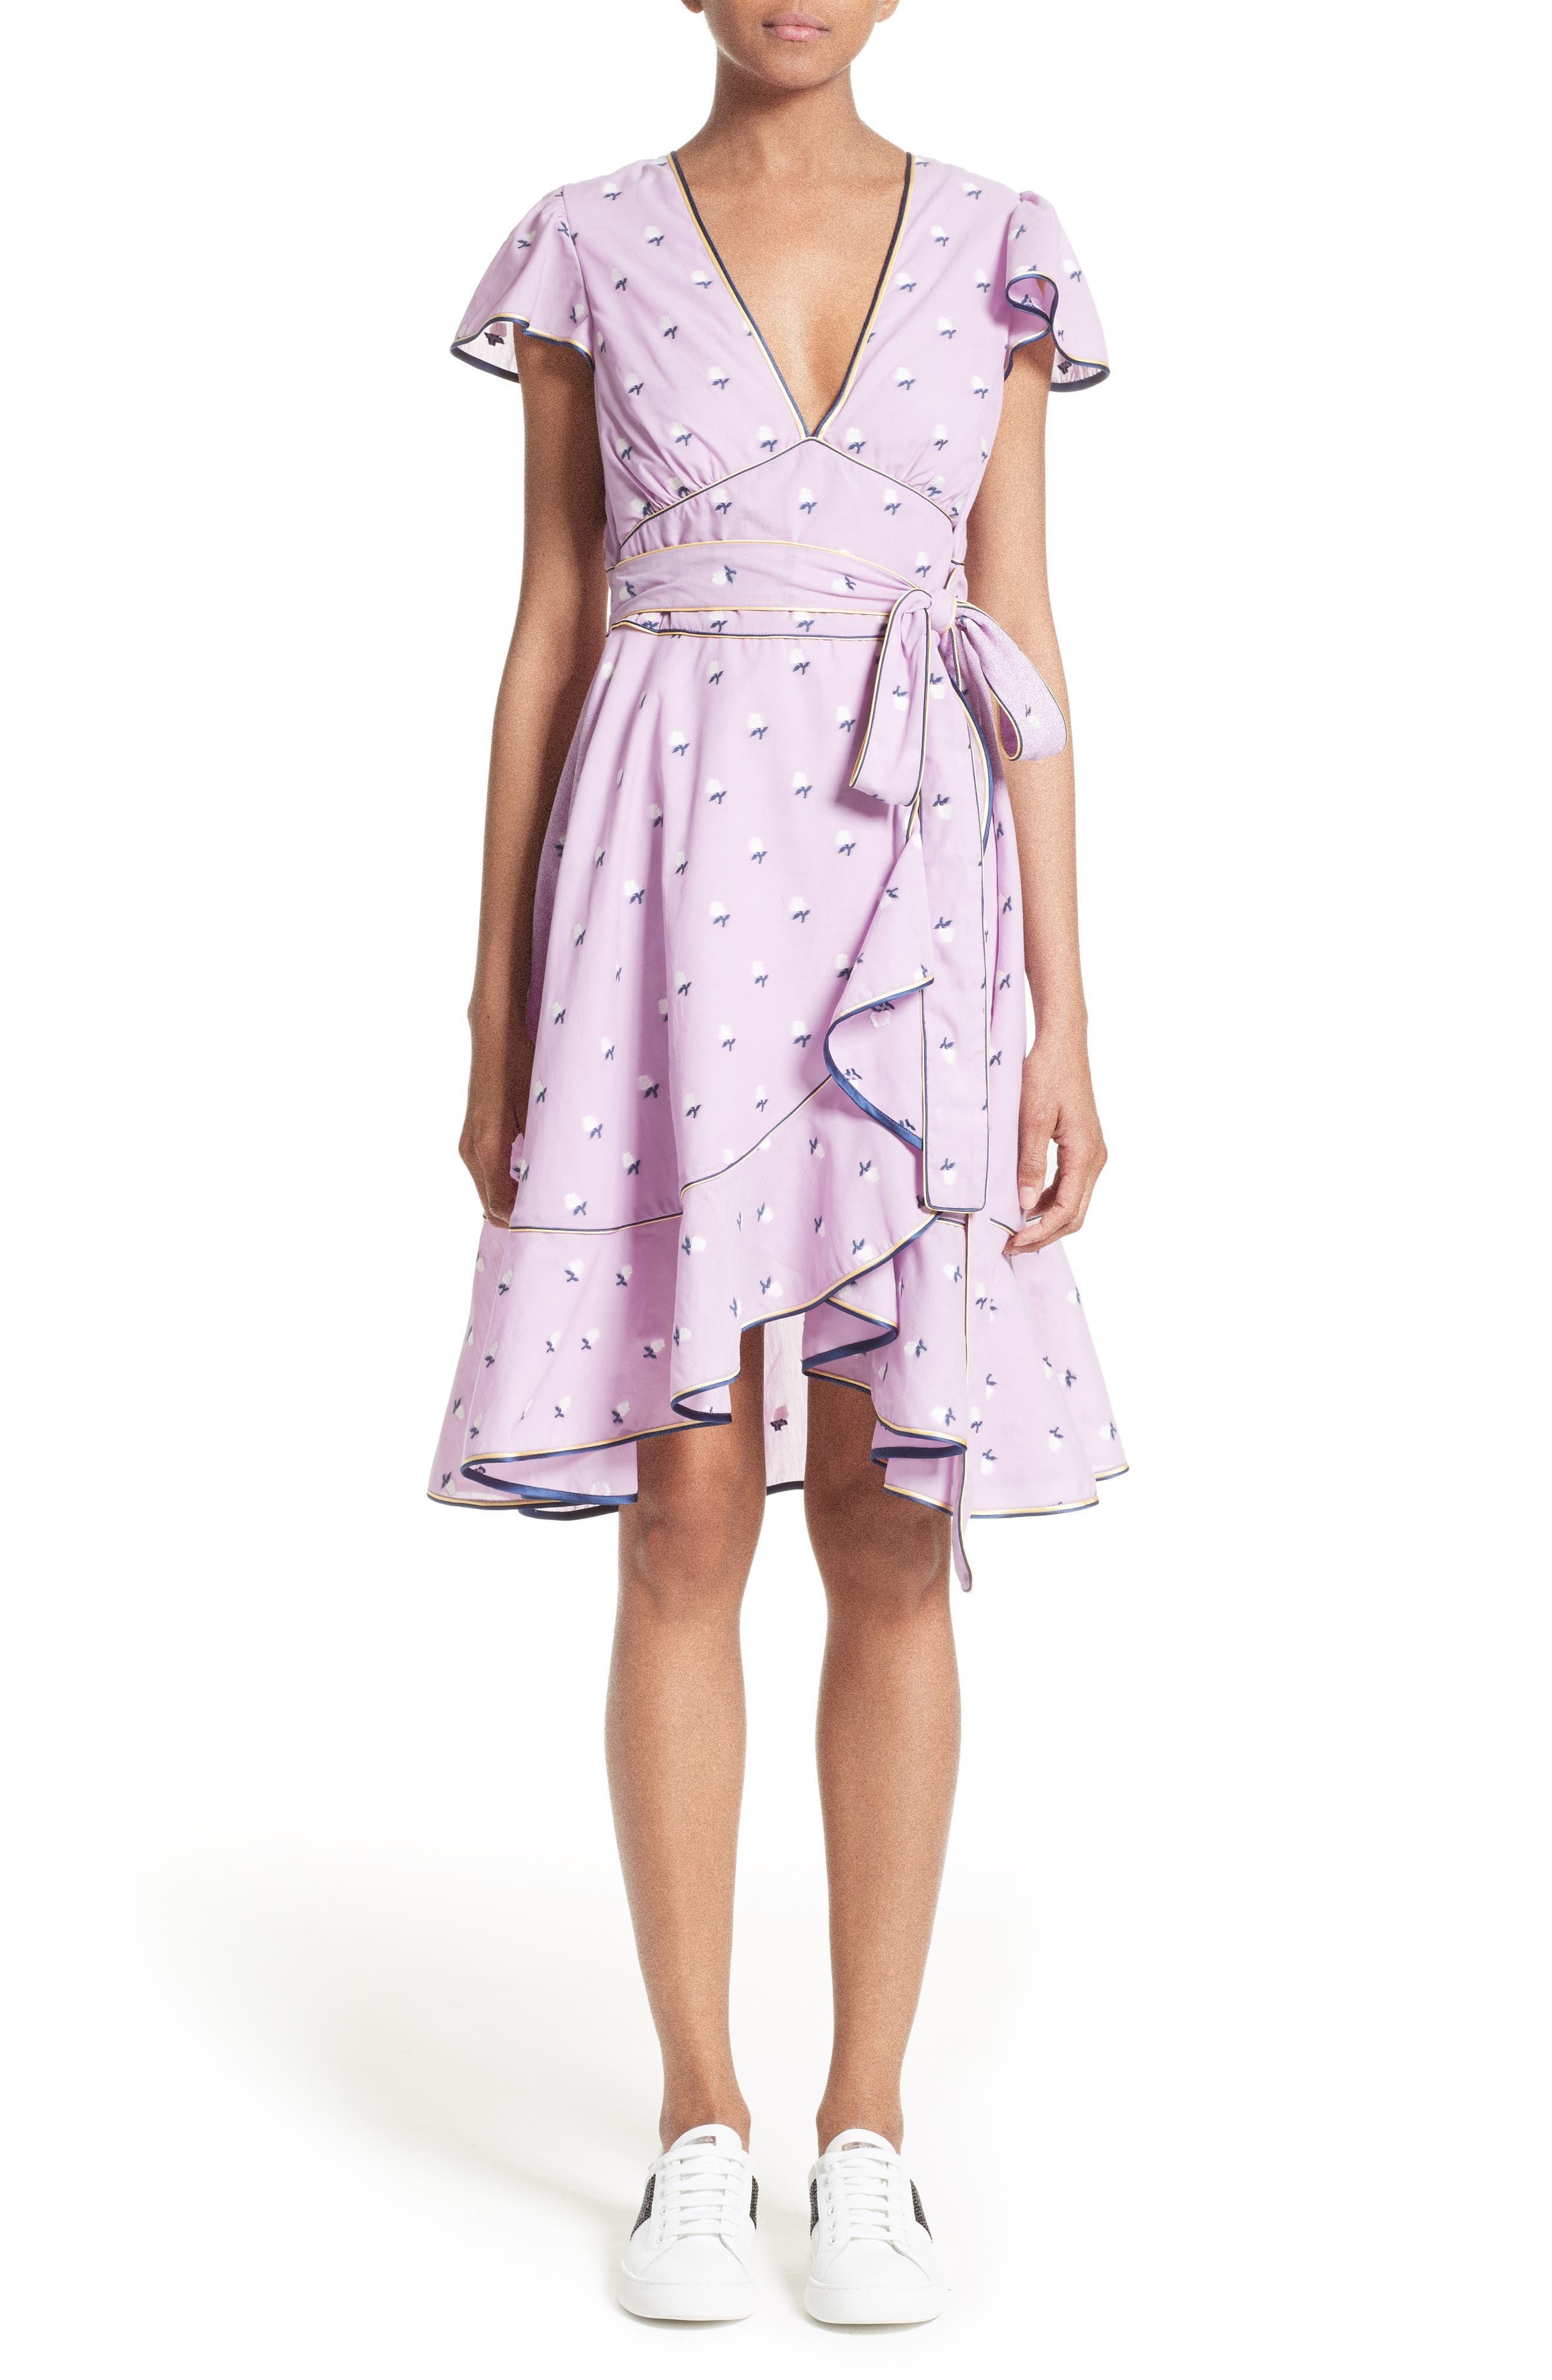 Alternate Image 1 Selected - MARC JACOBS Ruffle Reverse Fil Coupé Dress